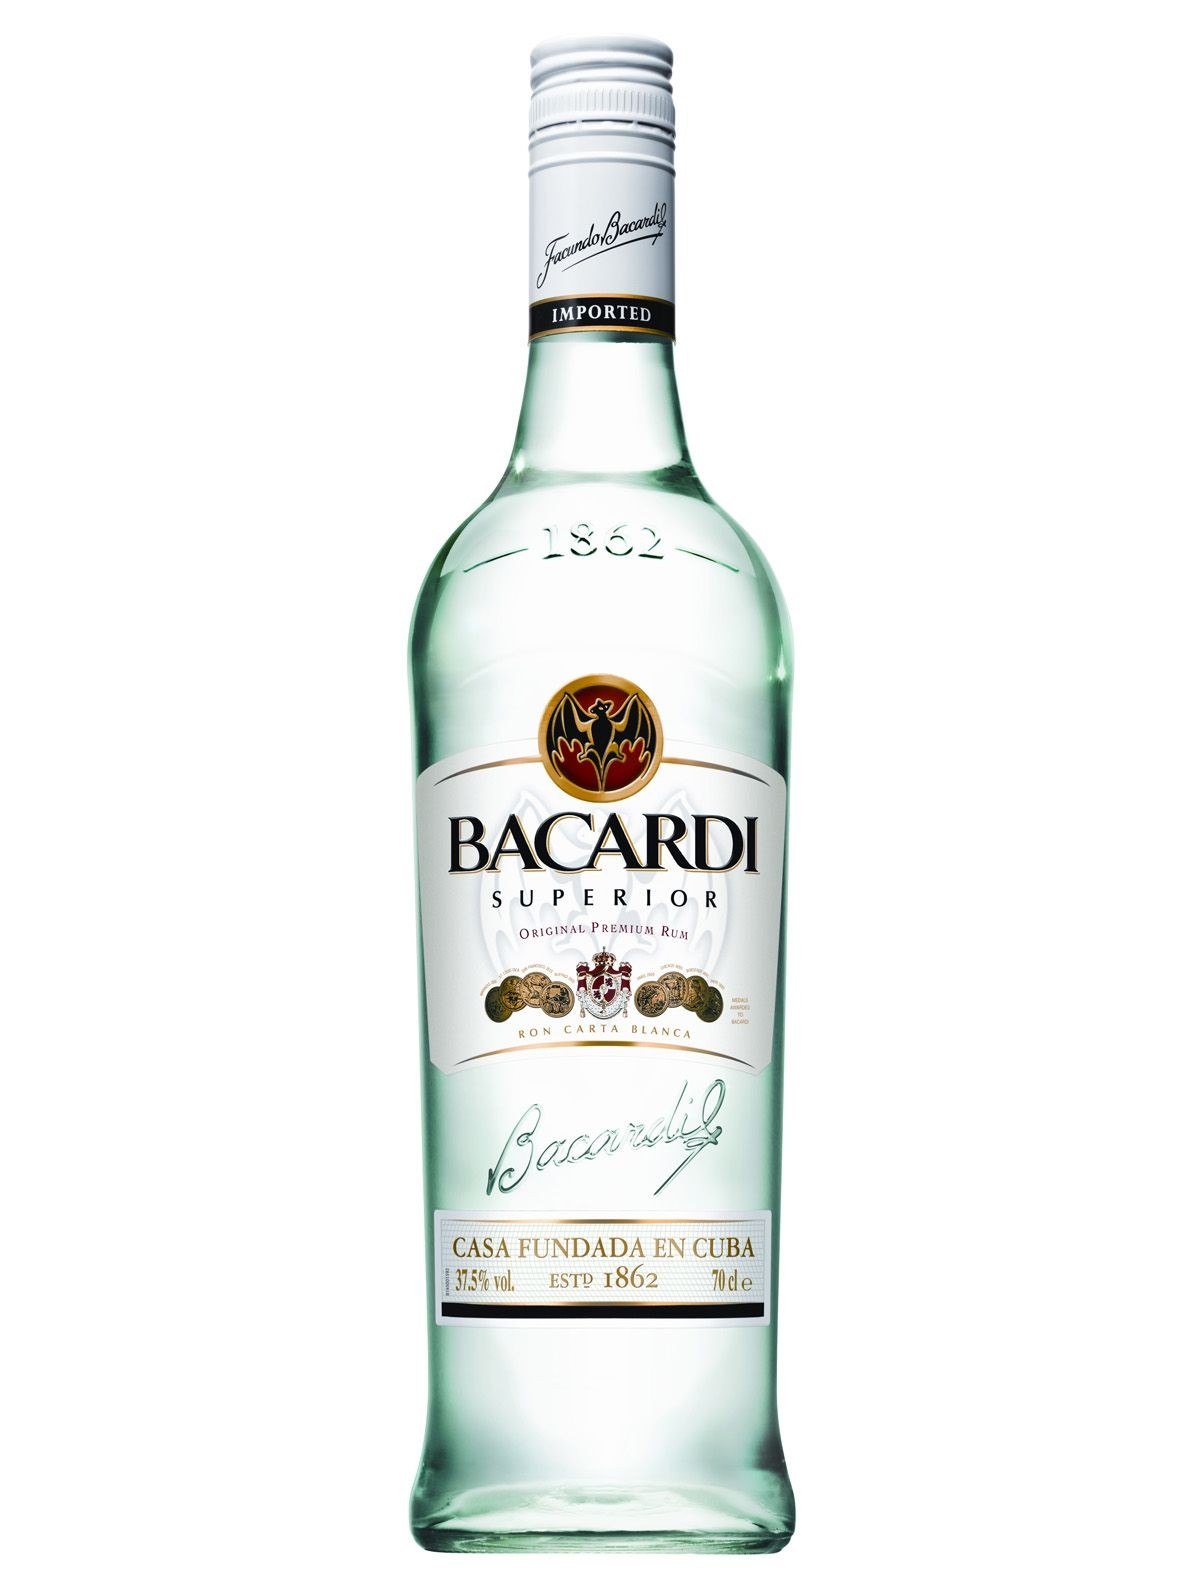 HQ Bacardi Wallpapers | File 126.94Kb